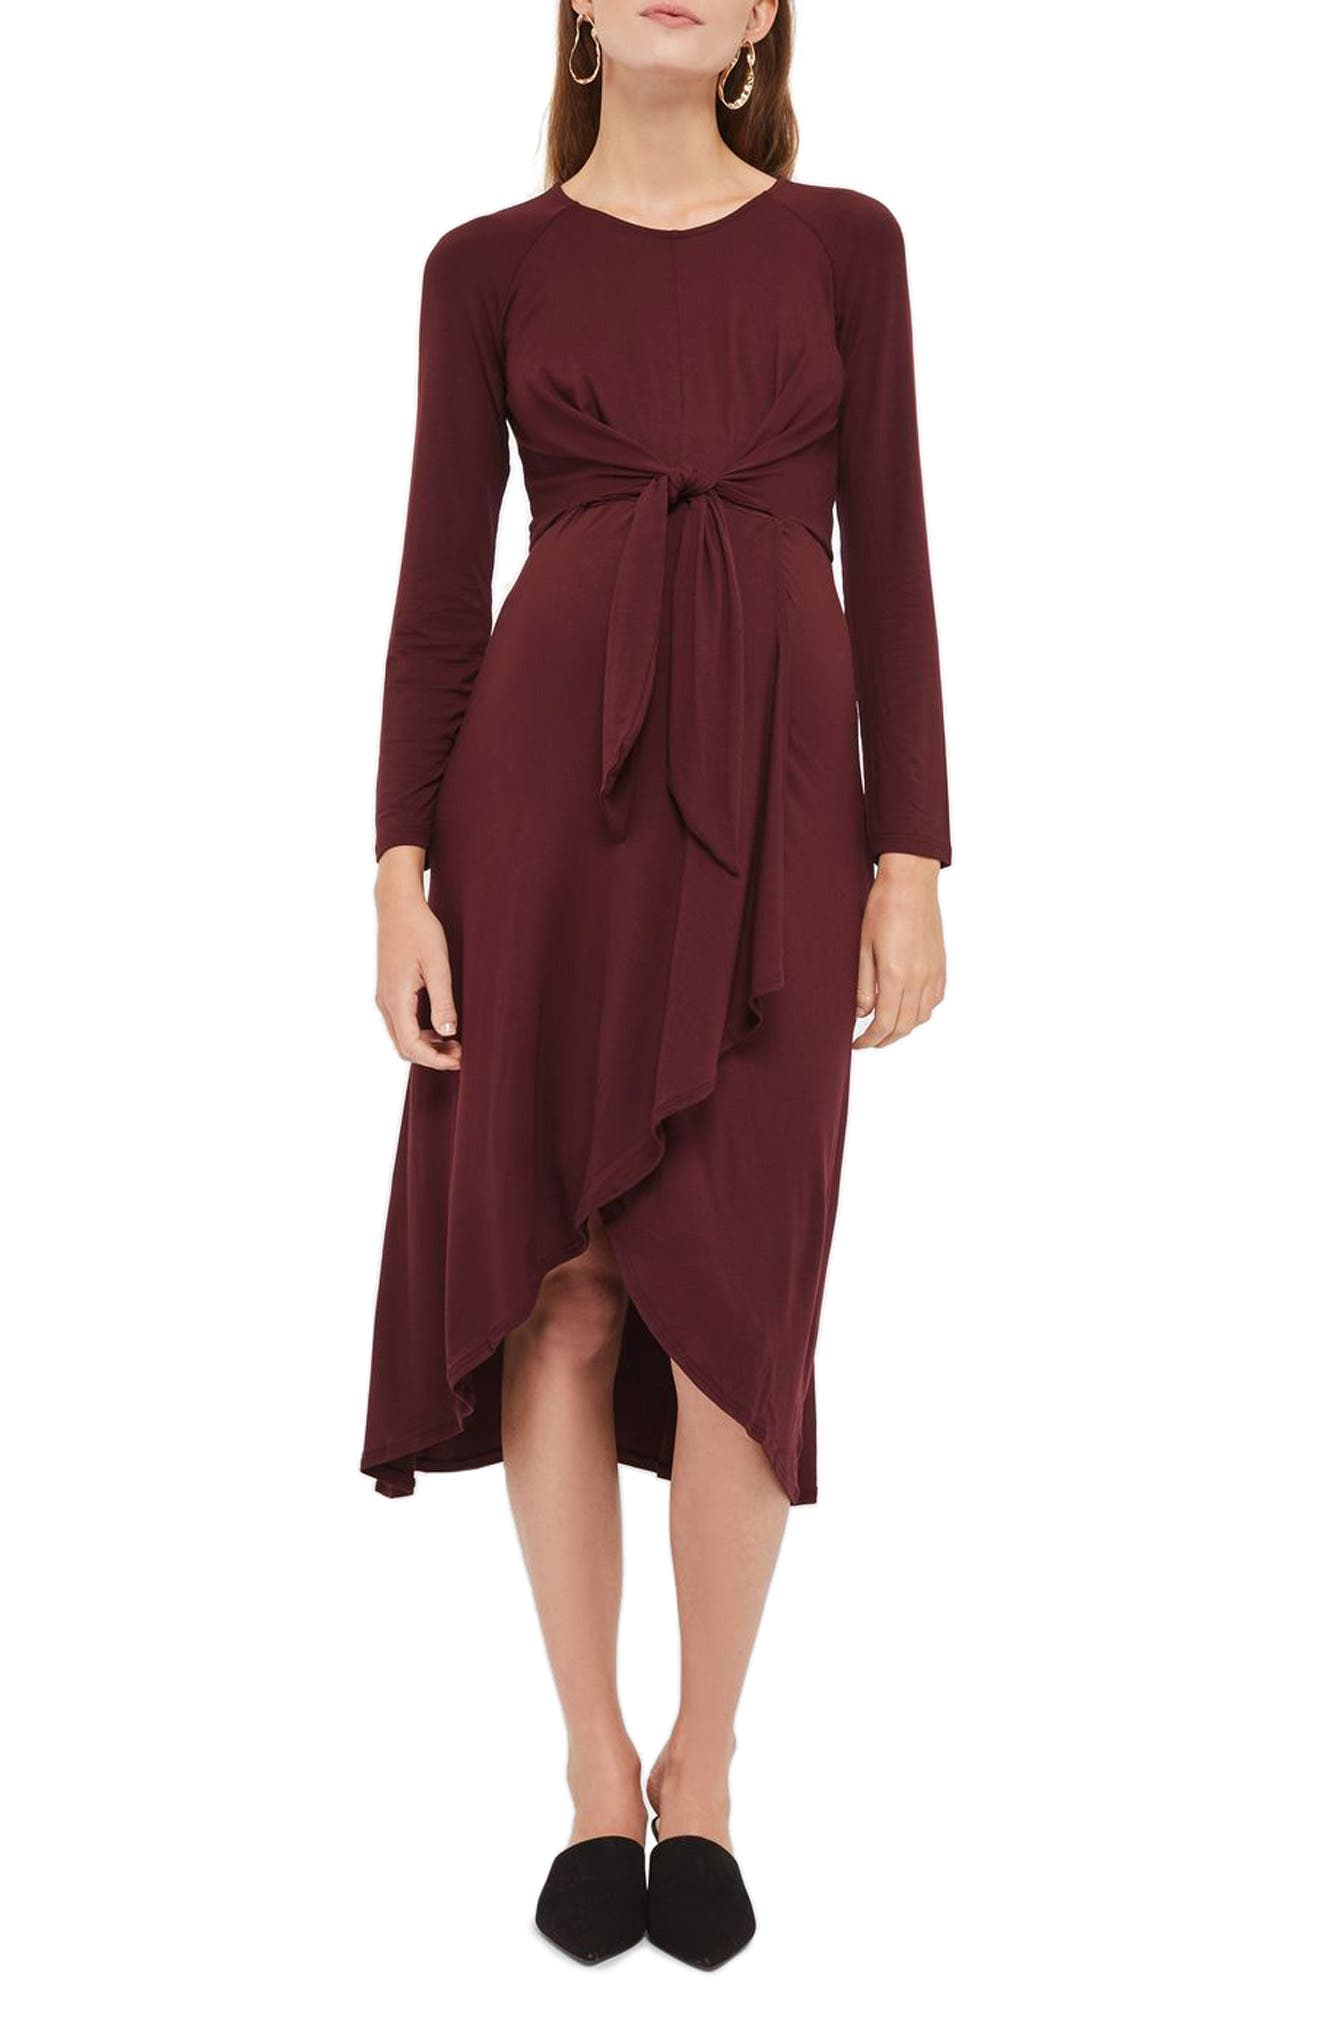 Topshop Knot Front Maternity Dress